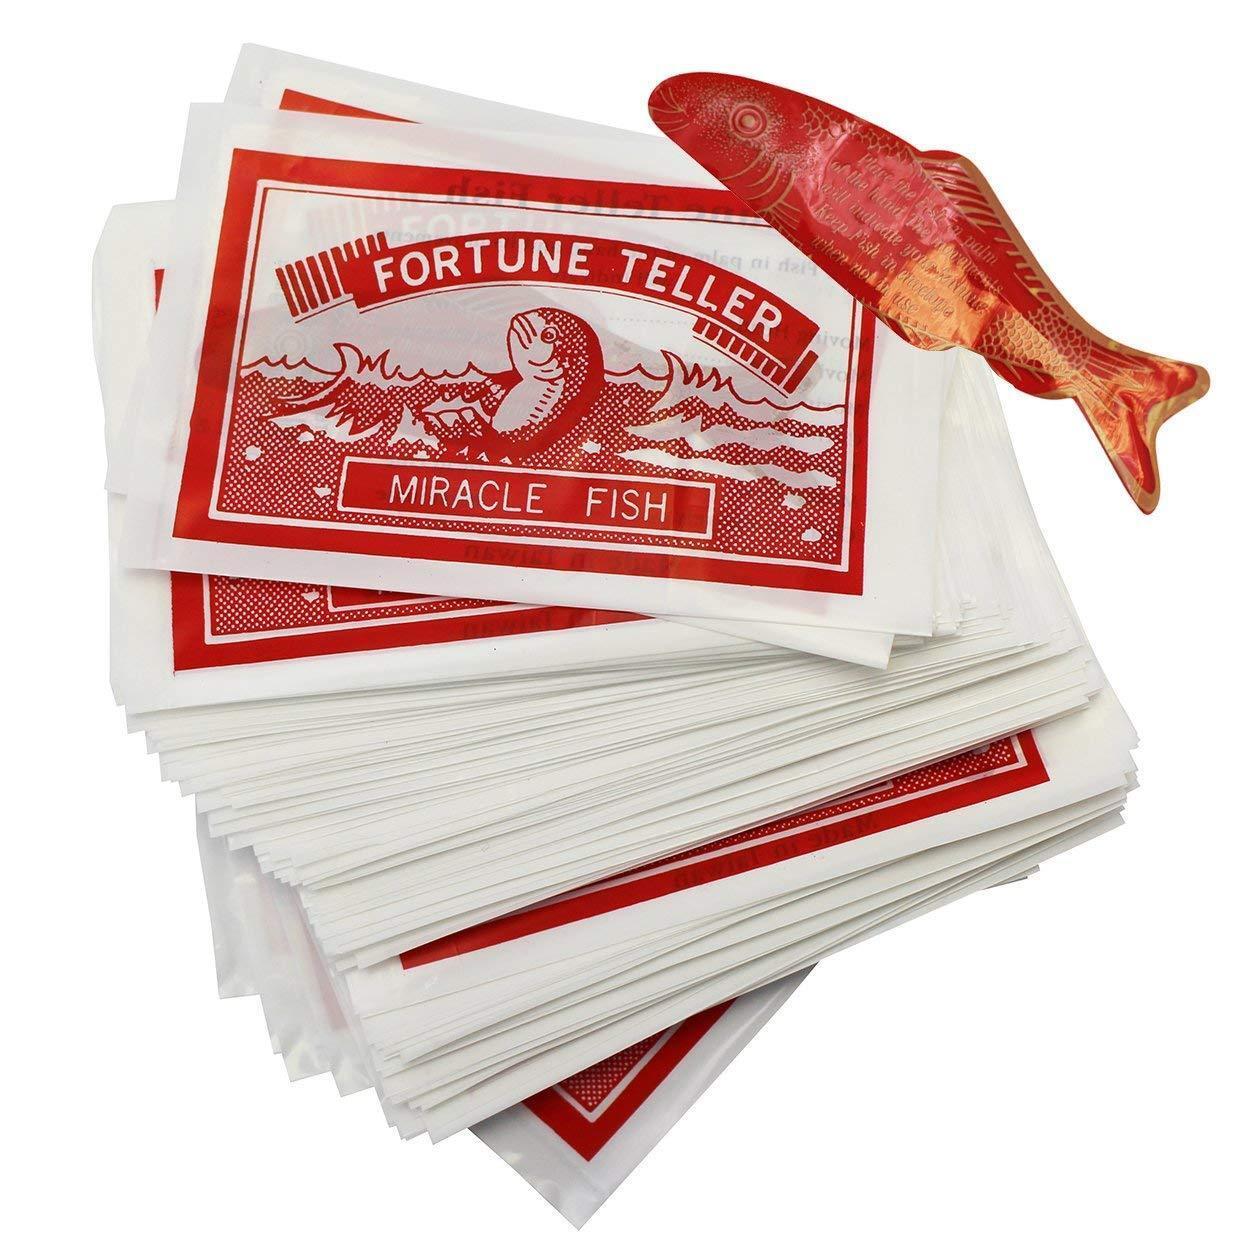 MIRACLE FORTUNE TELLING FISH PARTY BAG FILLER WEDDING FAVOUR FUNNY JOKE GIFT